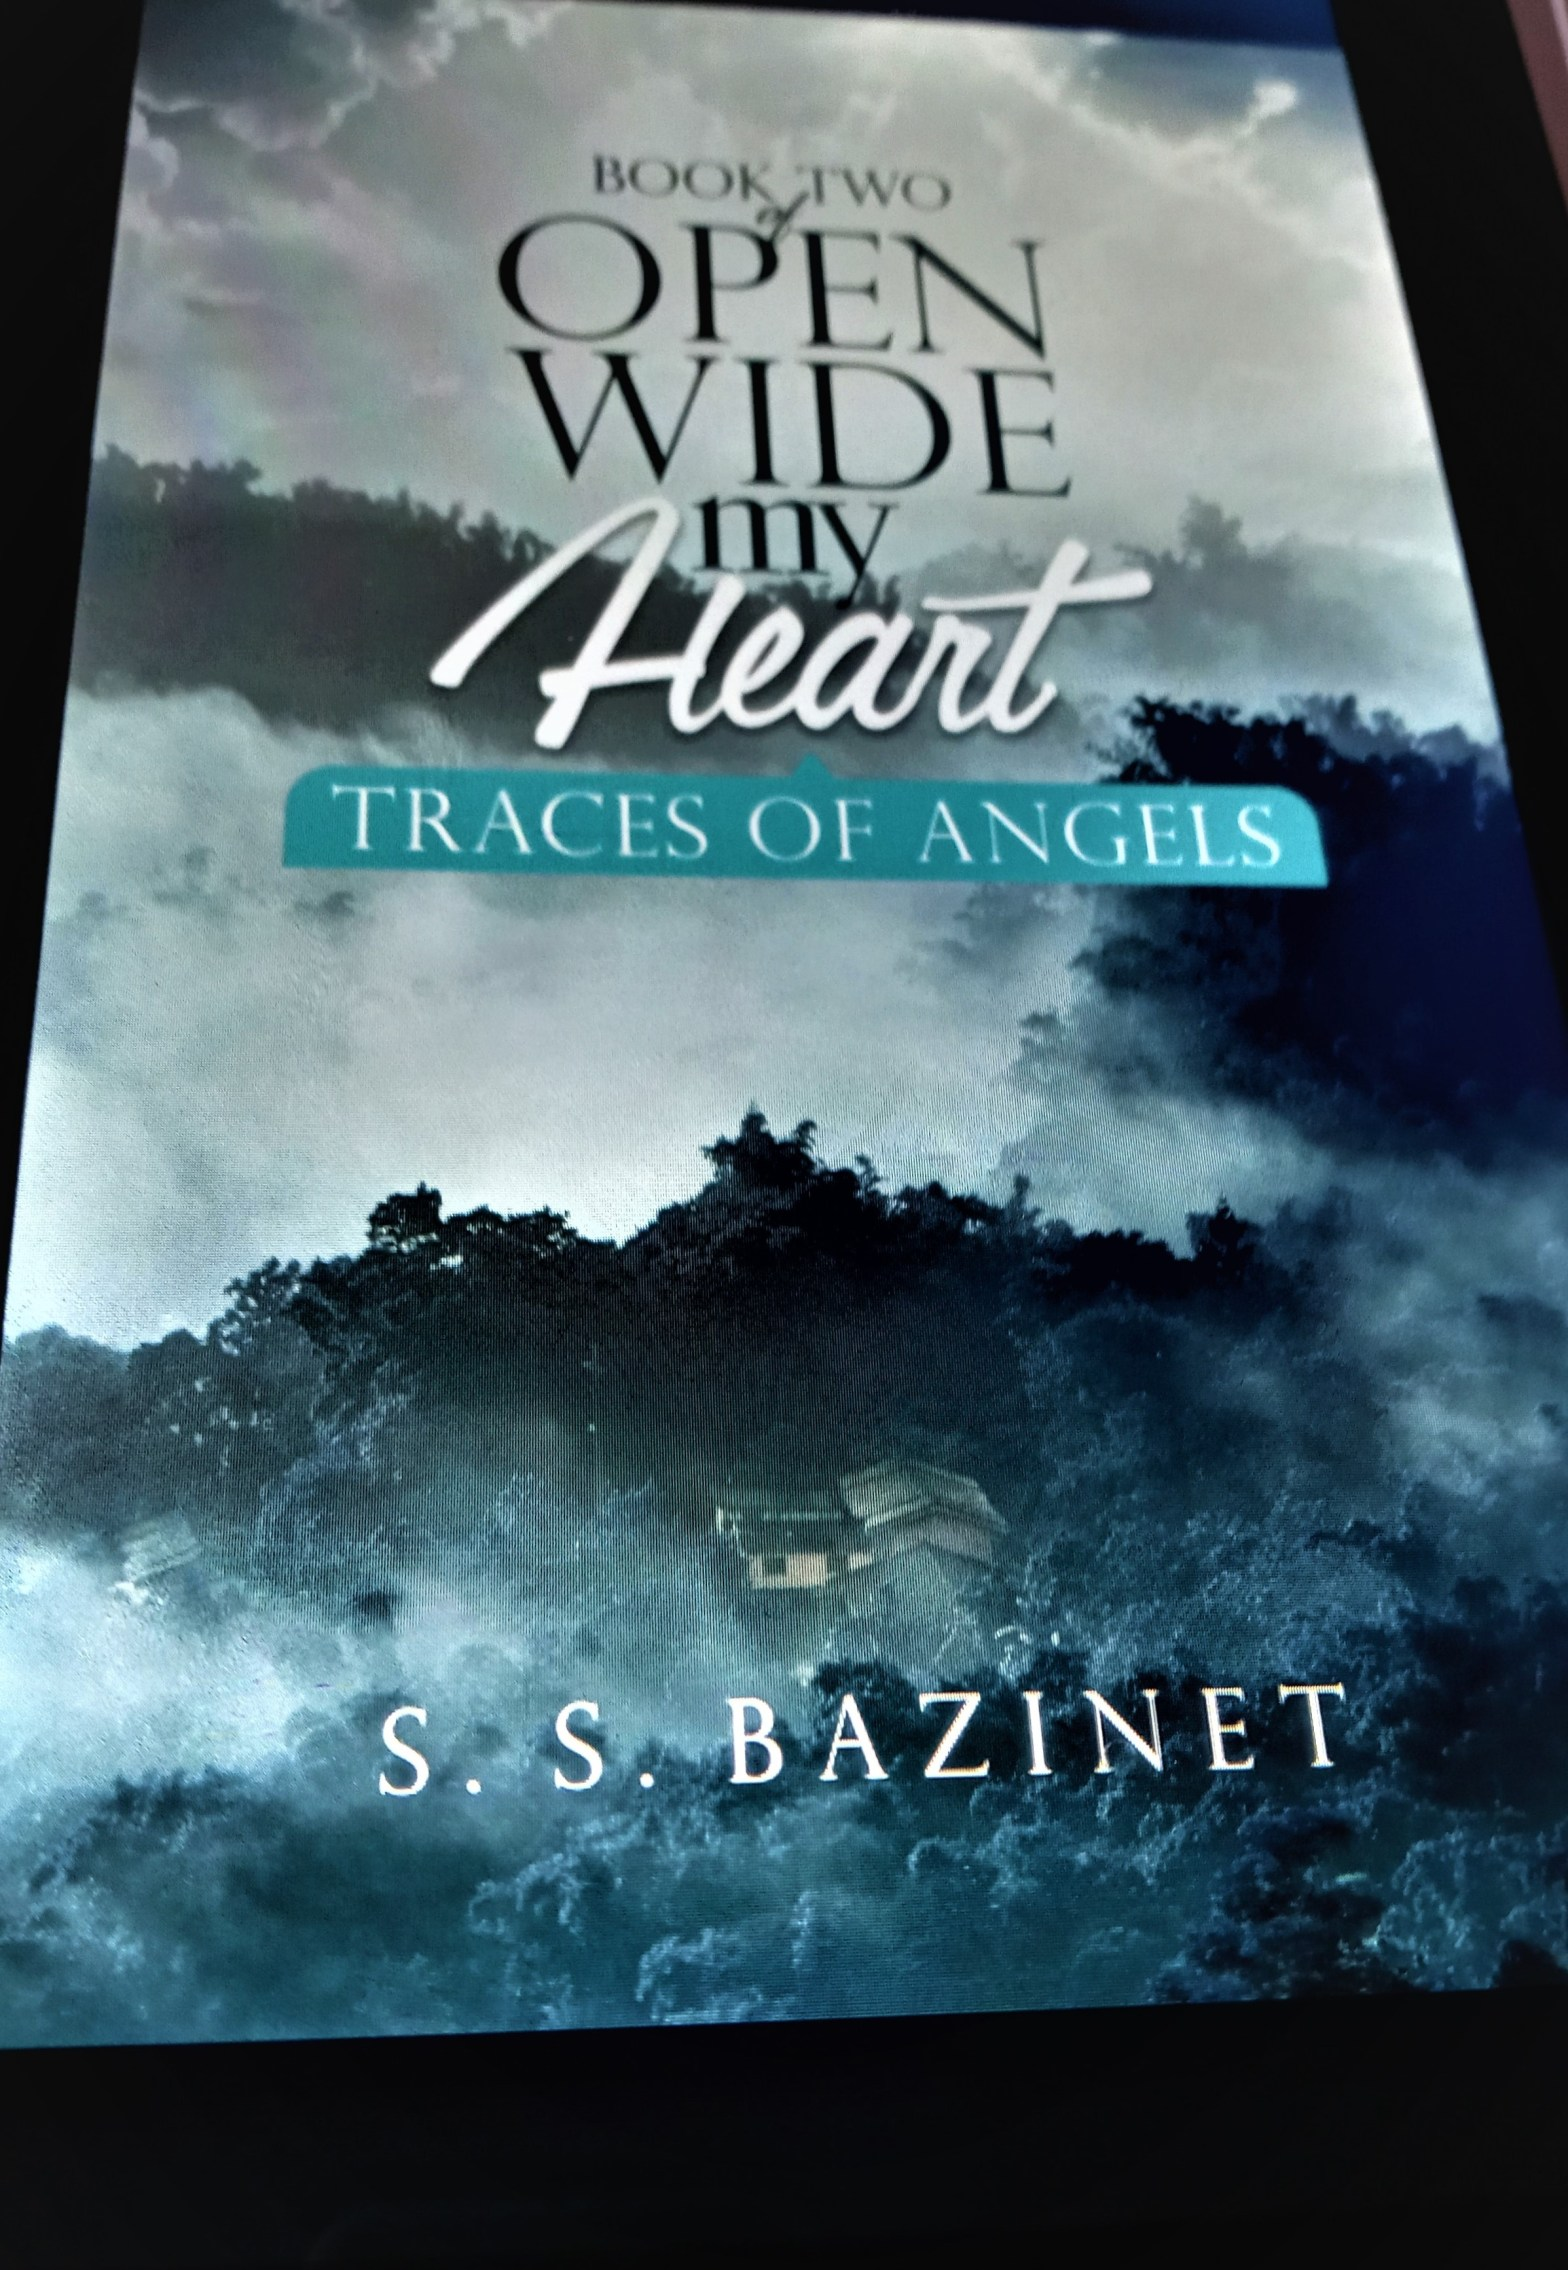 Traces of Angels